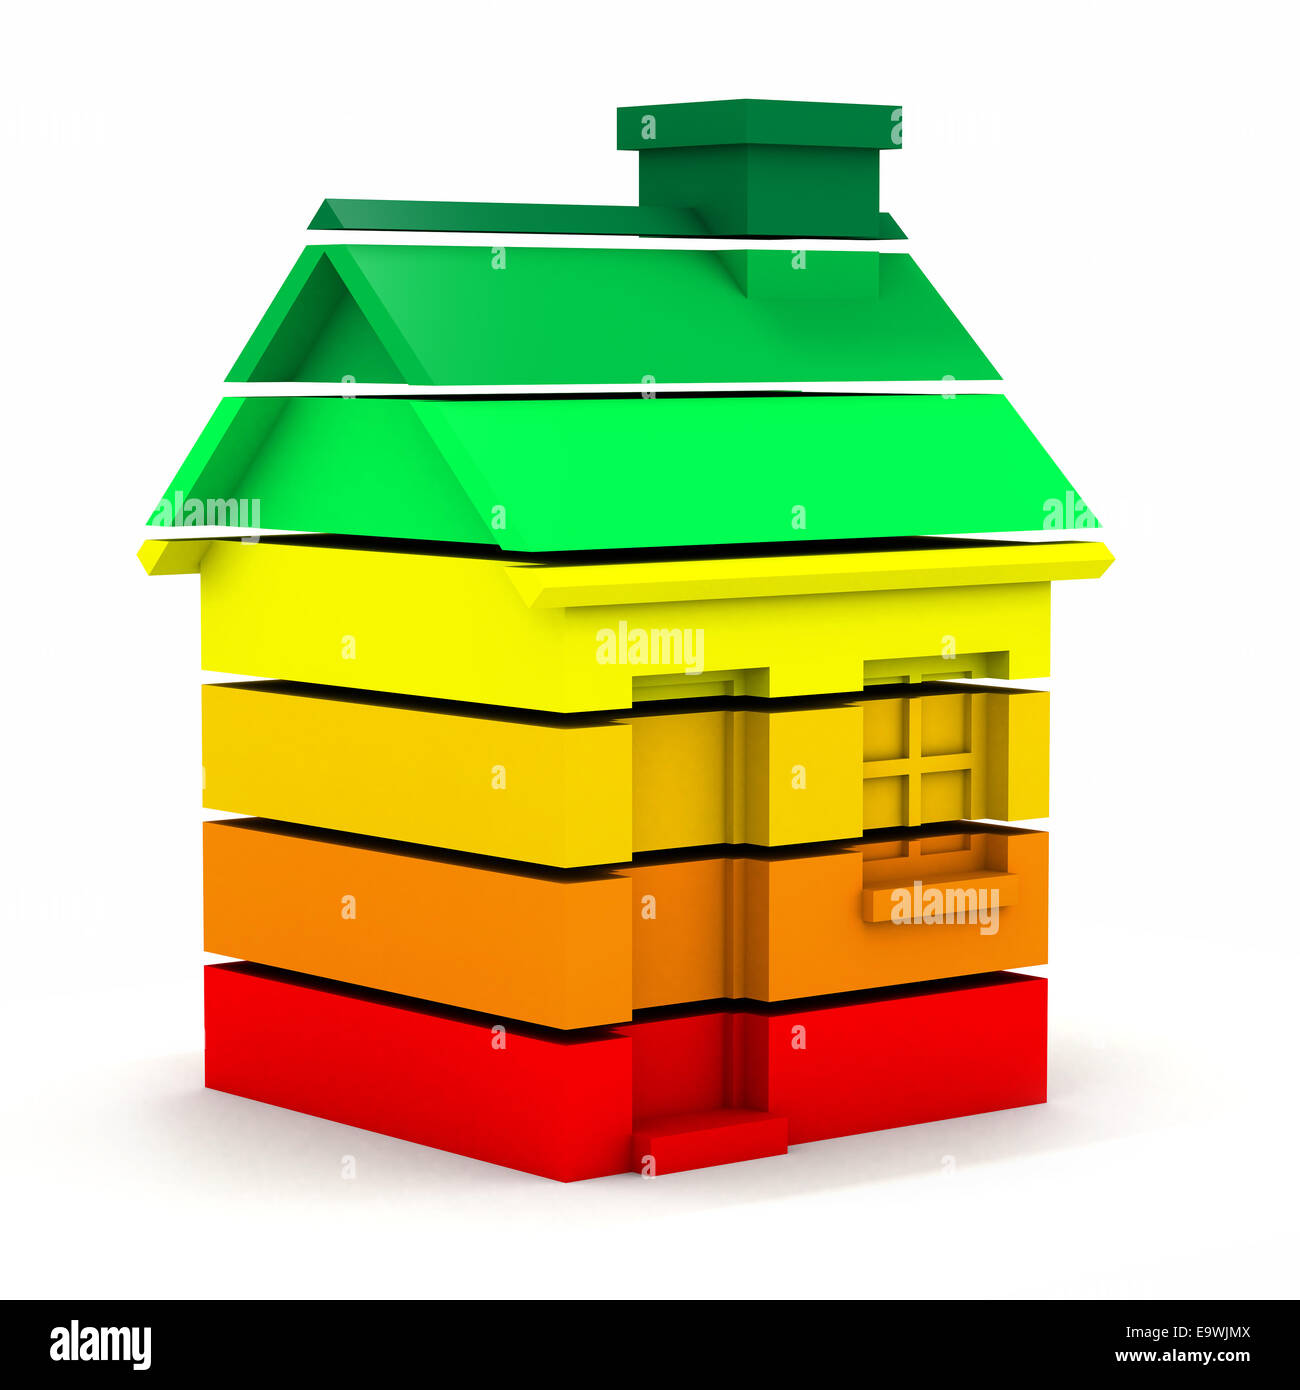 3d render of a house made of multi colored bars in the style of an energy usage chart - Stock Image